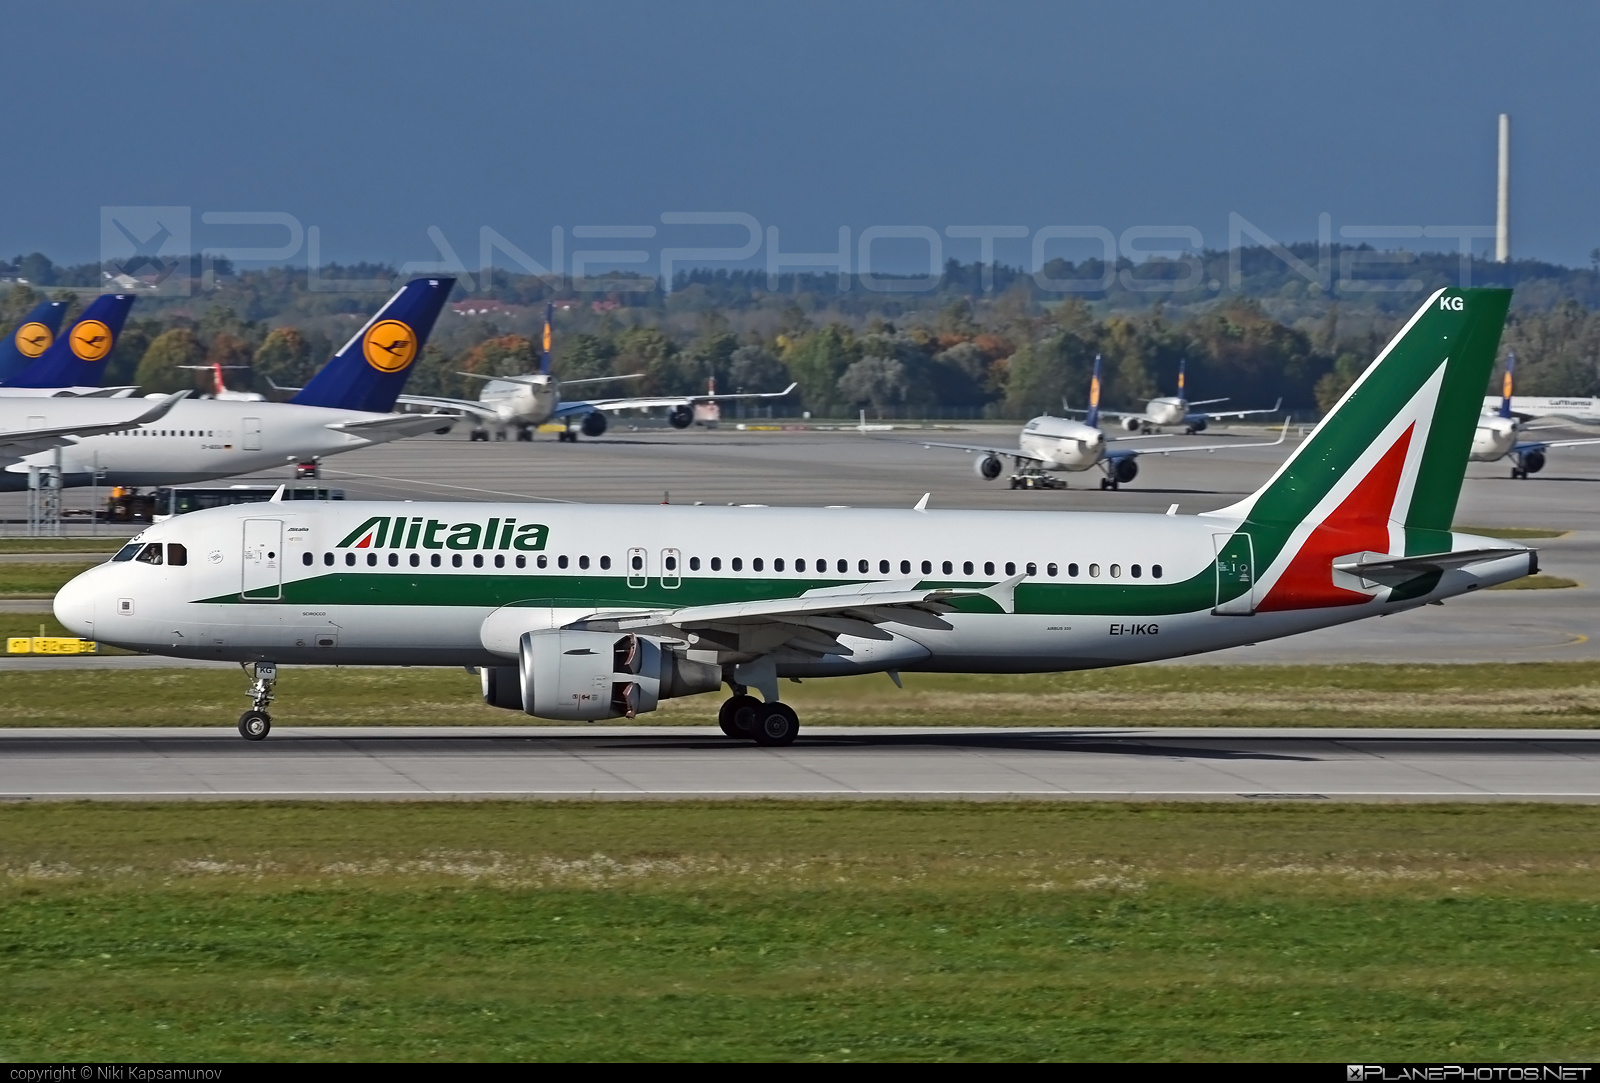 Airbus A320-214 - EI-IKG operated by Alitalia #a320 #a320family #airbus #airbus320 #alitalia